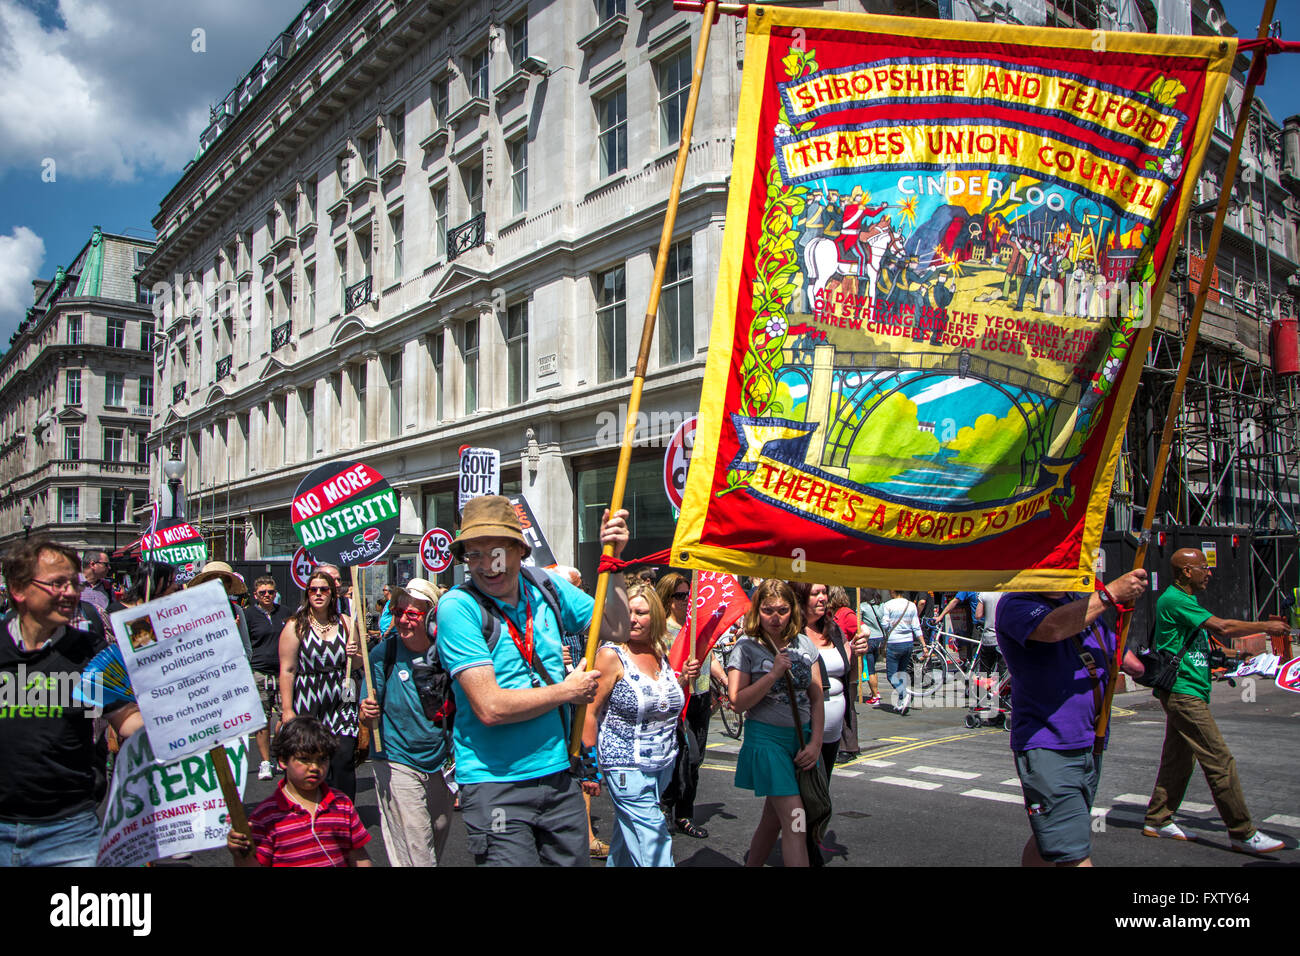 Trade Unionists at People's Assembly march/ rally 'No More Austerity', June 21, 2014 London - Stock Image